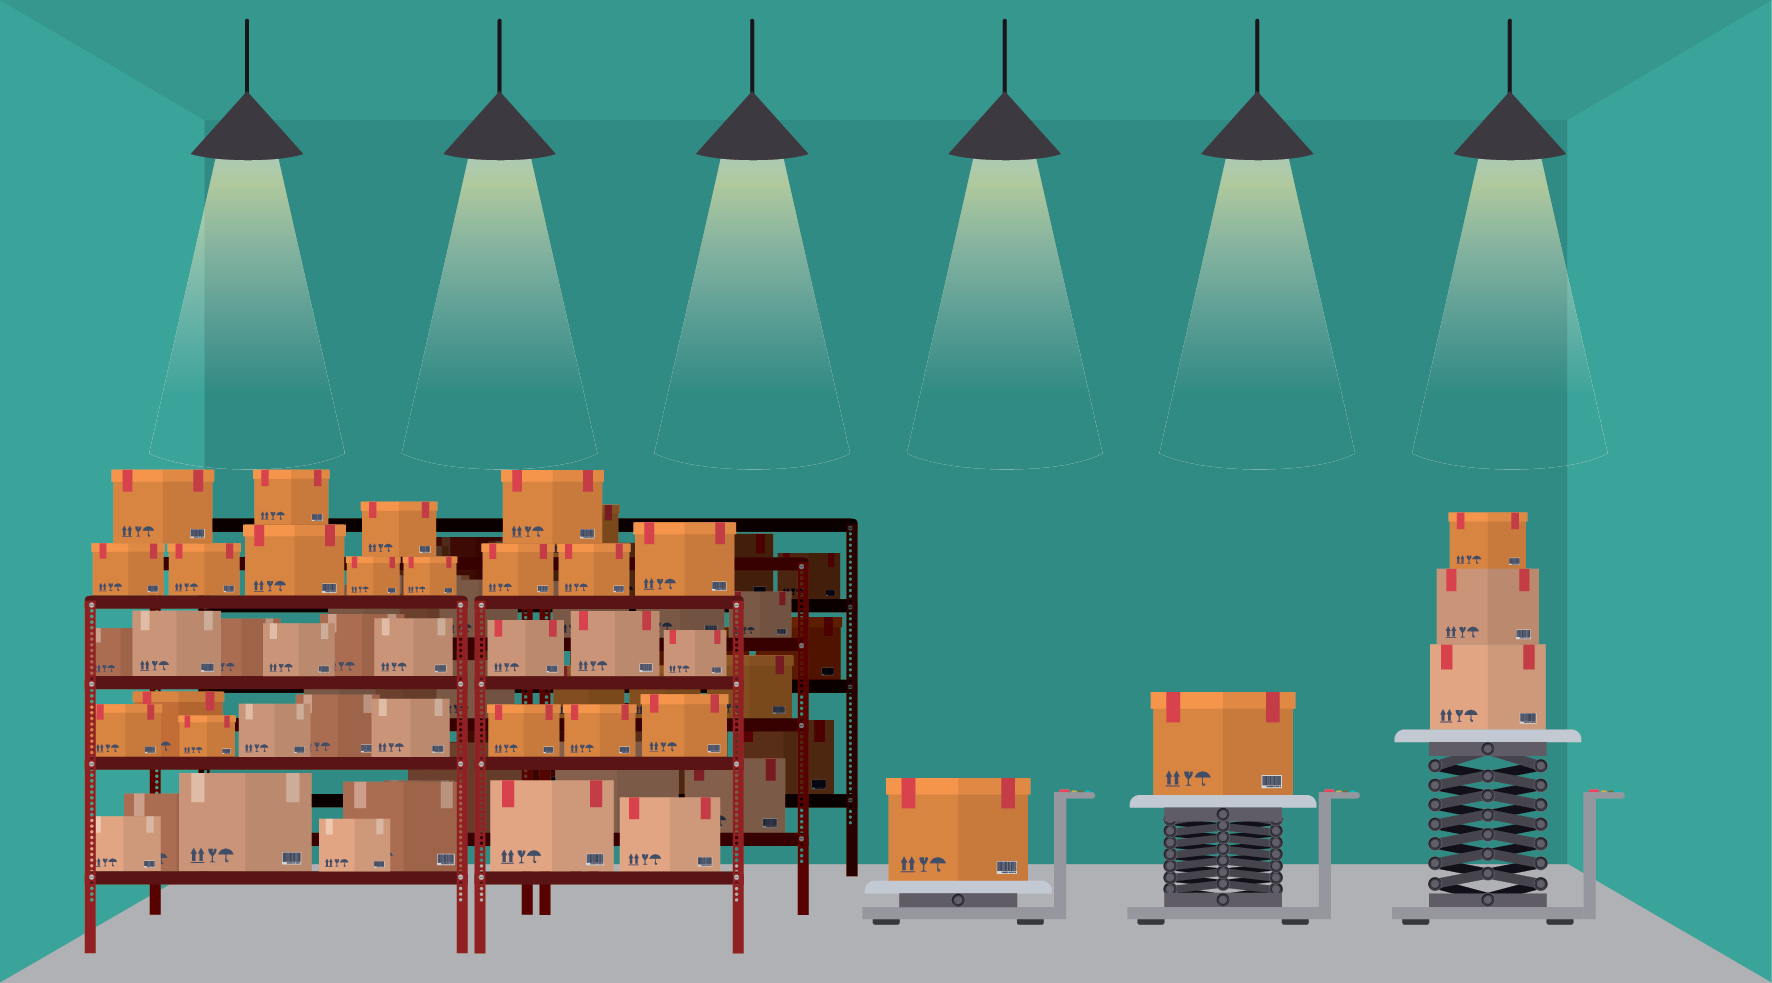 Illustration of boxes in a warehouse